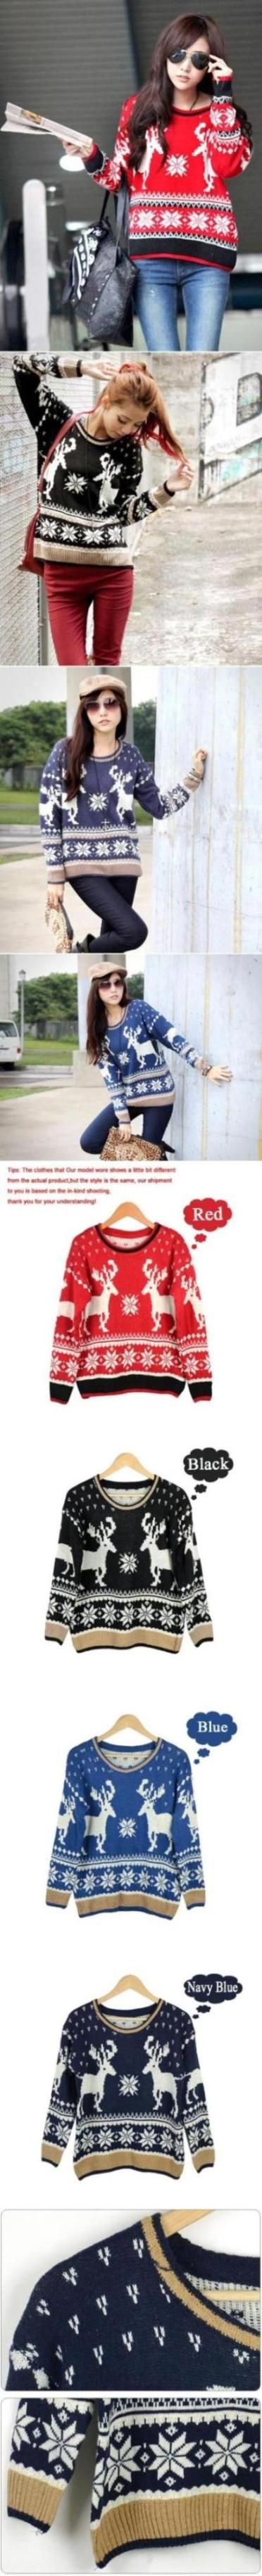 awesome free shipping Pullover Christmas Women Geometry Deer Long Sleeve Knitted Winter Sweater sf57 FF11421